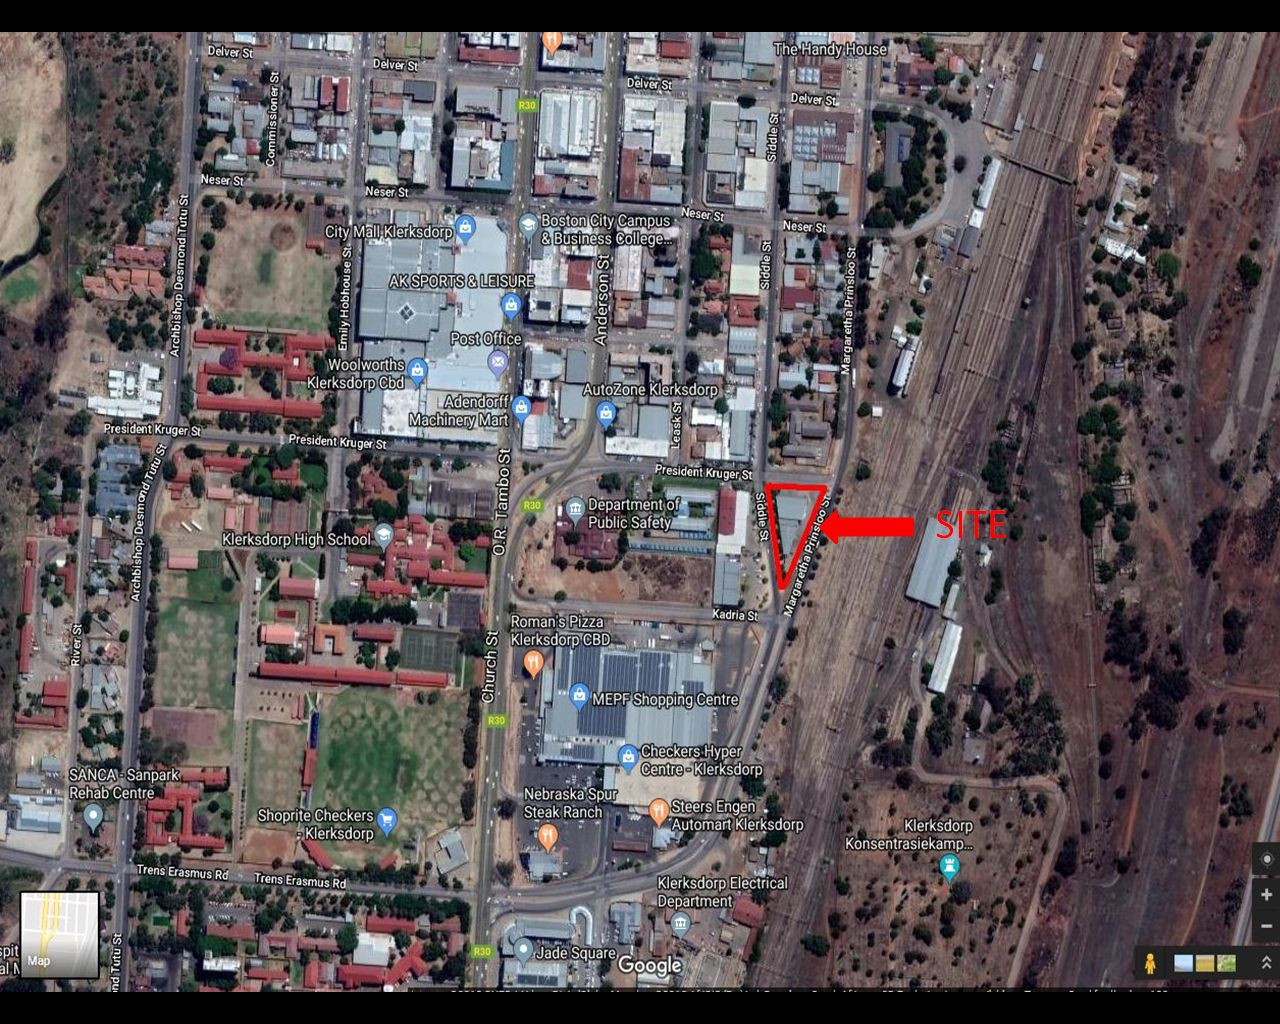 Investment / Residential investment in Klerksdorp - Connies 3.jpg